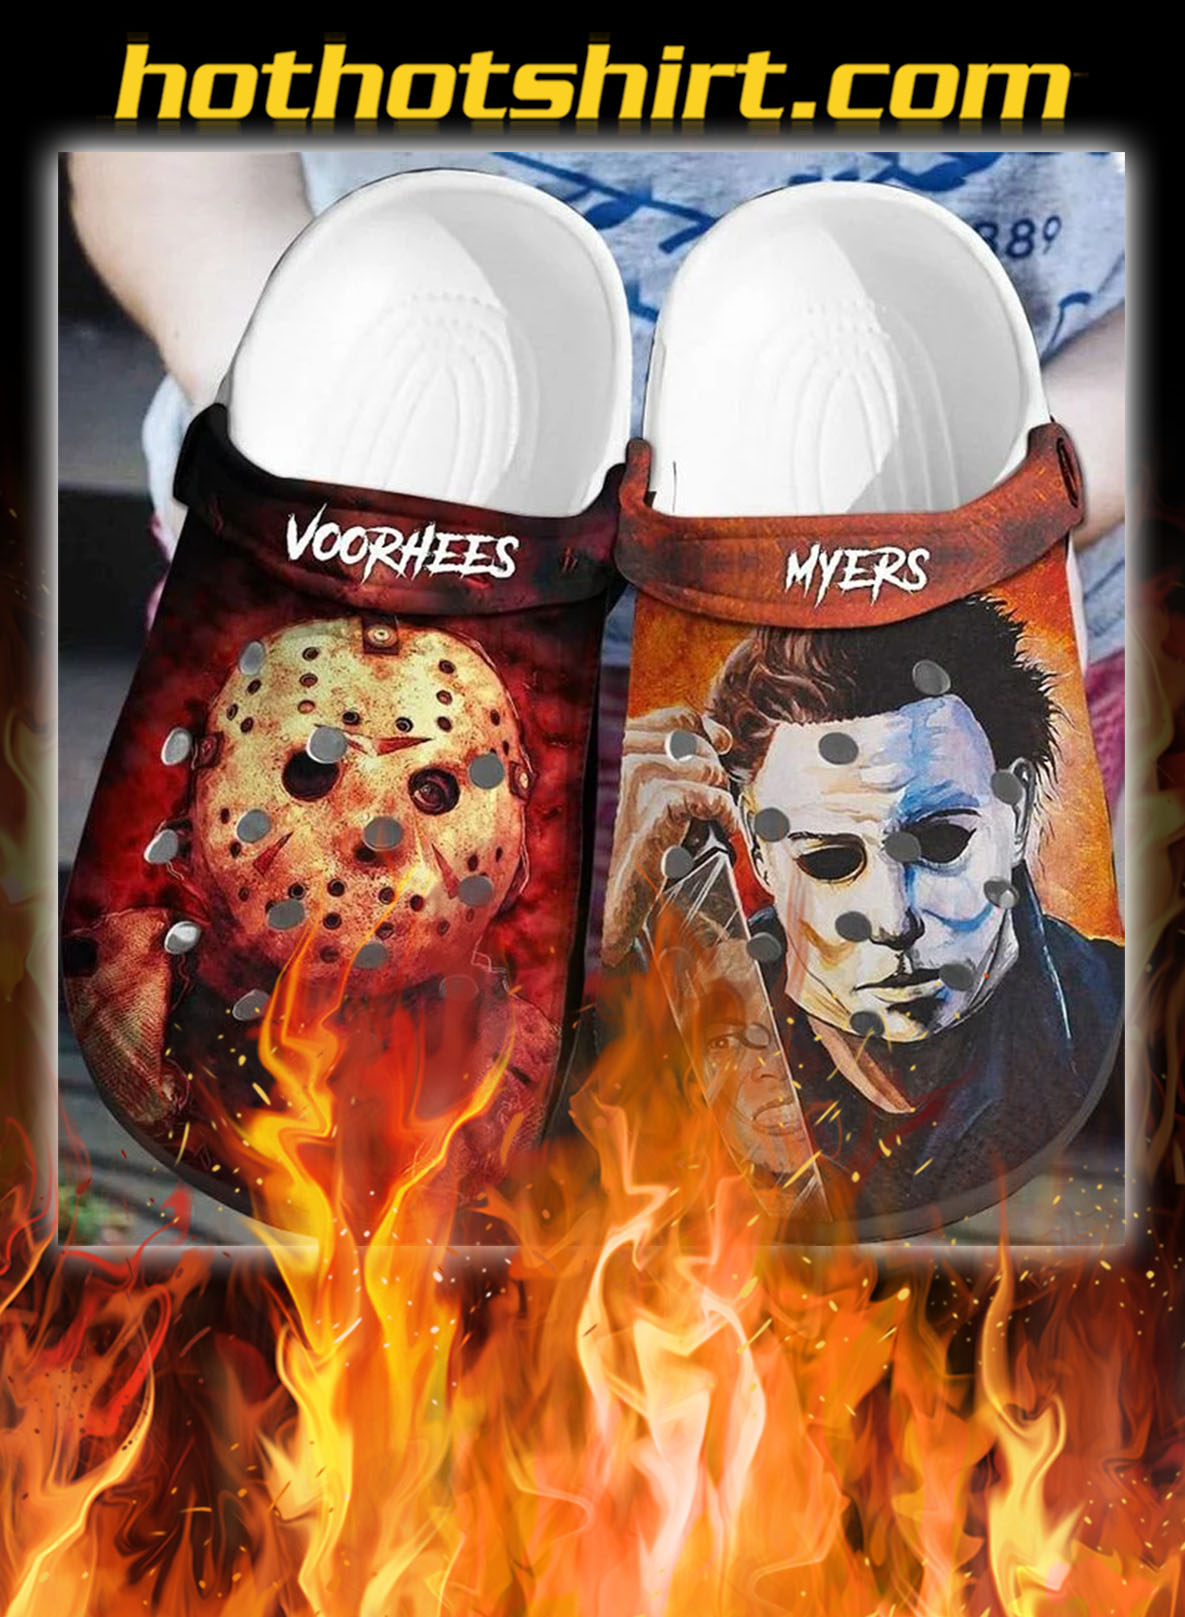 Voorhees myers crocband crocs shoes - pic 1